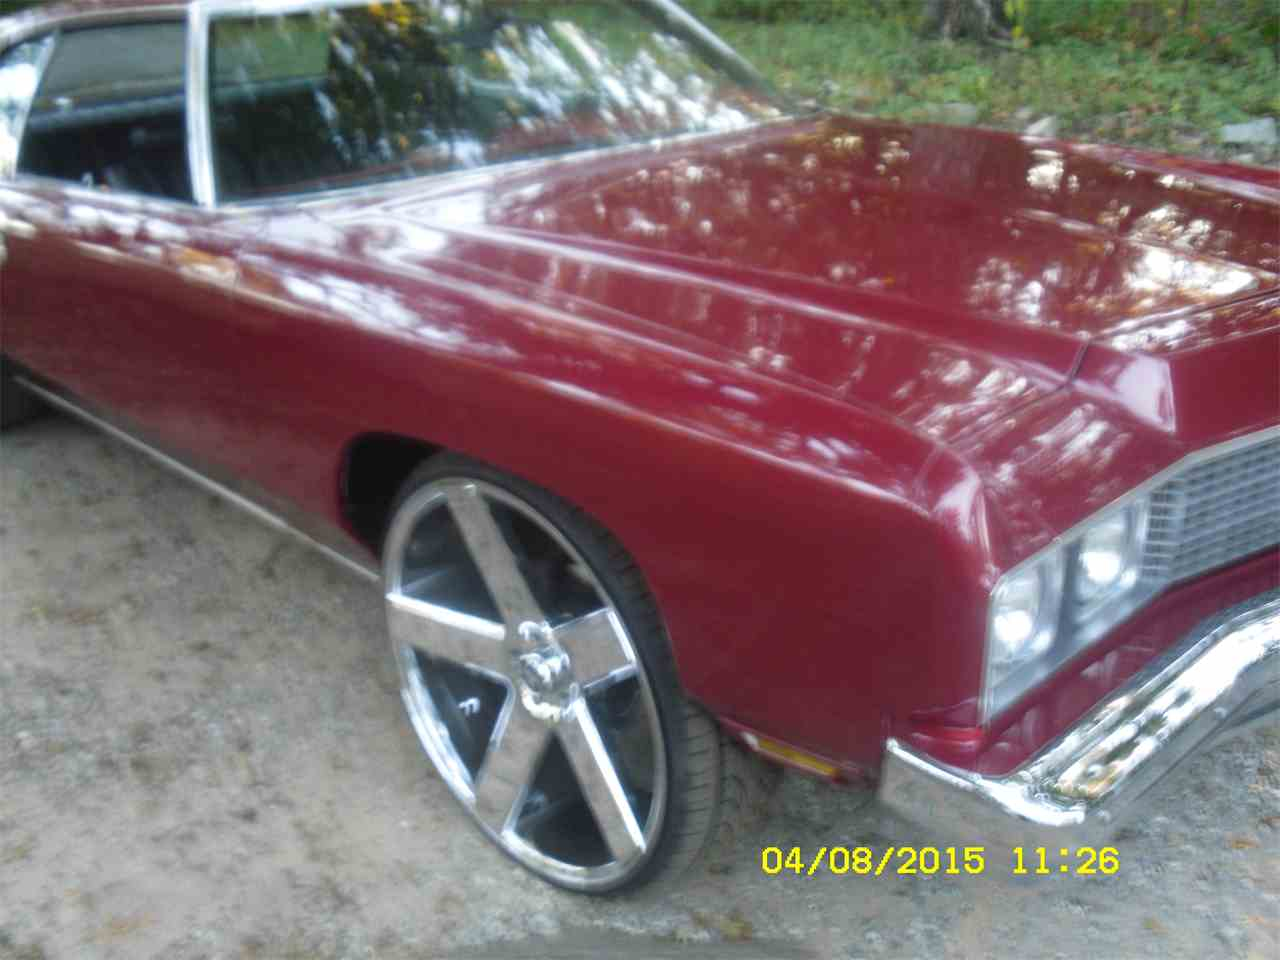 Large Picture of Classic 1973 Chevrolet Impala located in Georgia - $14,500.00 Offered by a Private Seller - JIZ7